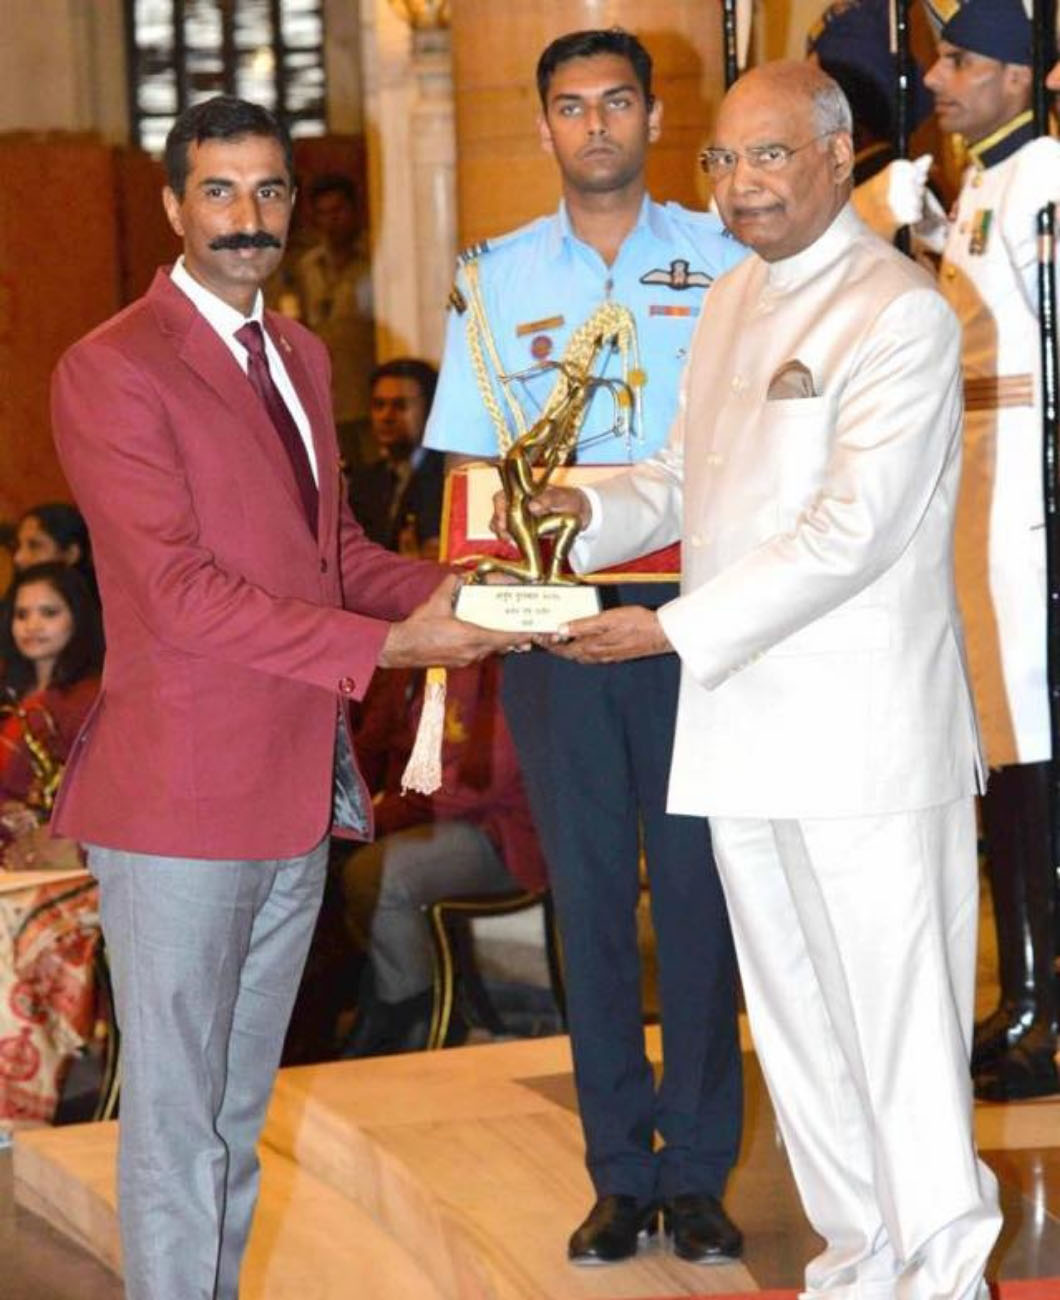 Col-Ravi-Rathore-arjuna-awardee-president-of-india-ram-nath-kovind